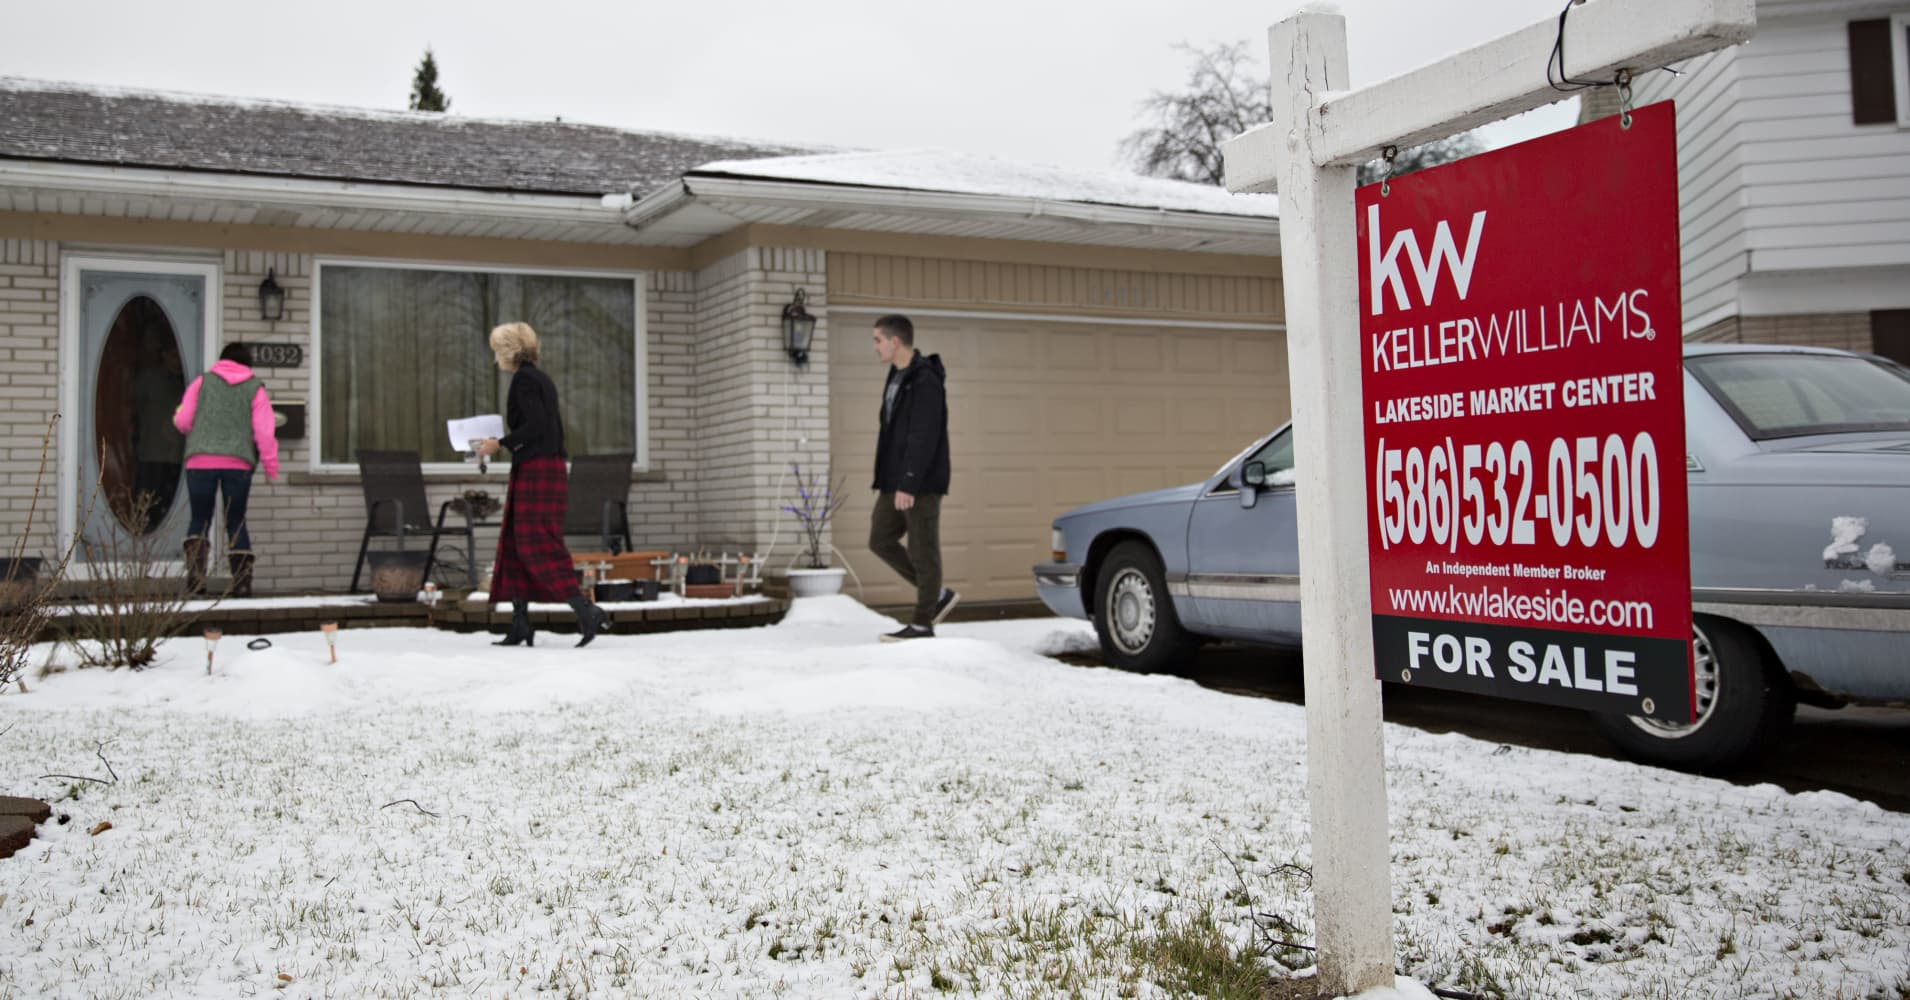 Mortgage applications stall, along with interest rates